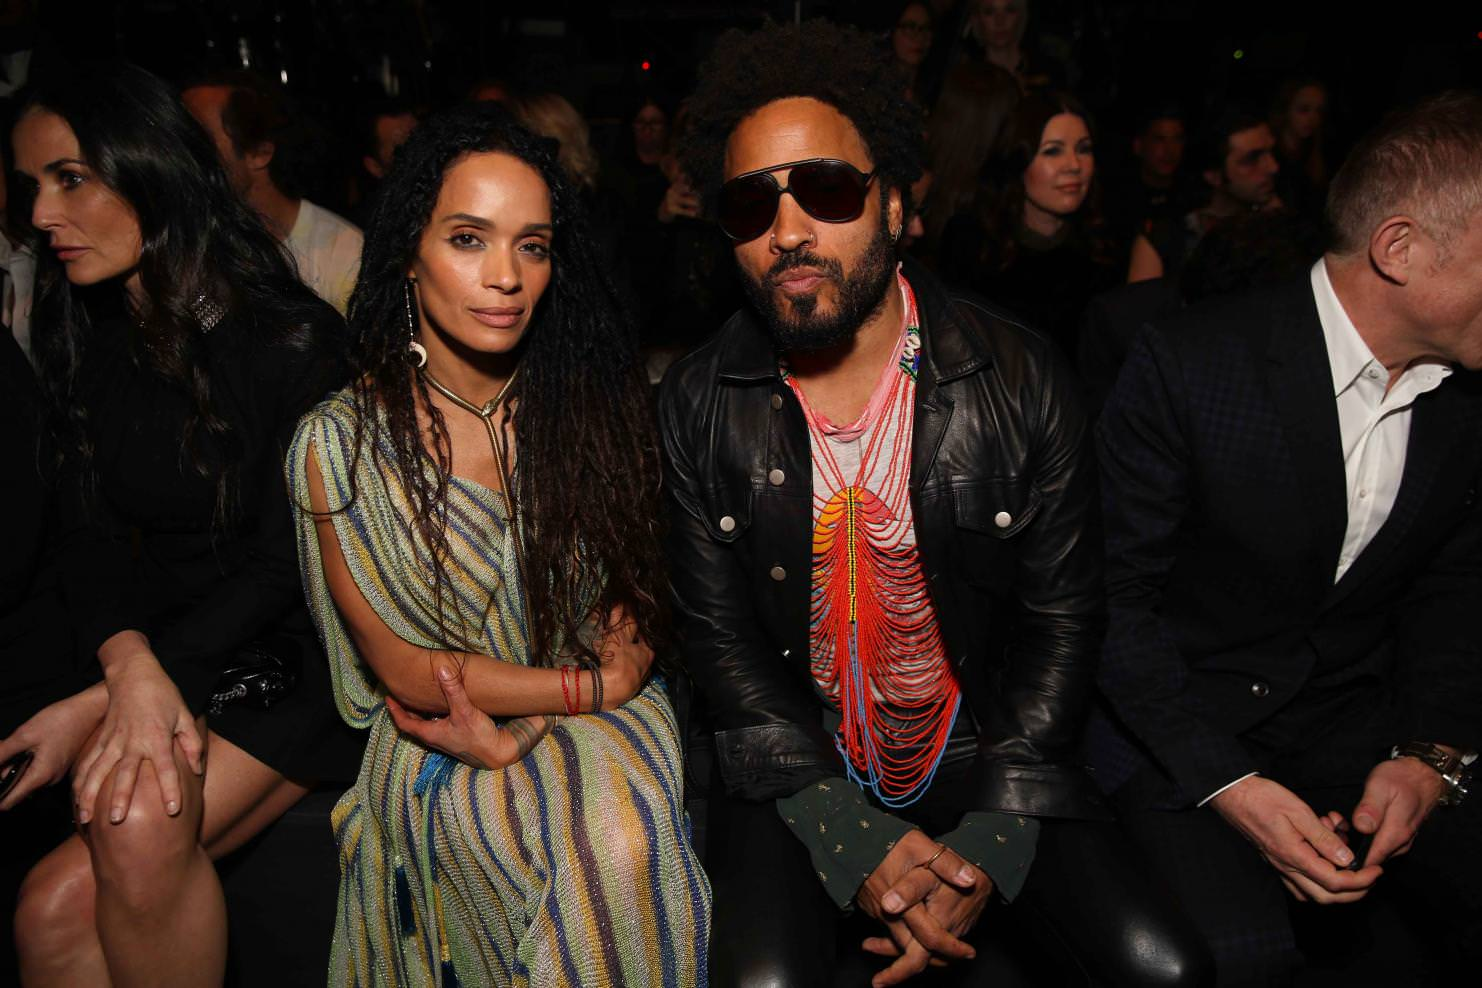 Lisa Bonnet and Lenny Kravitz